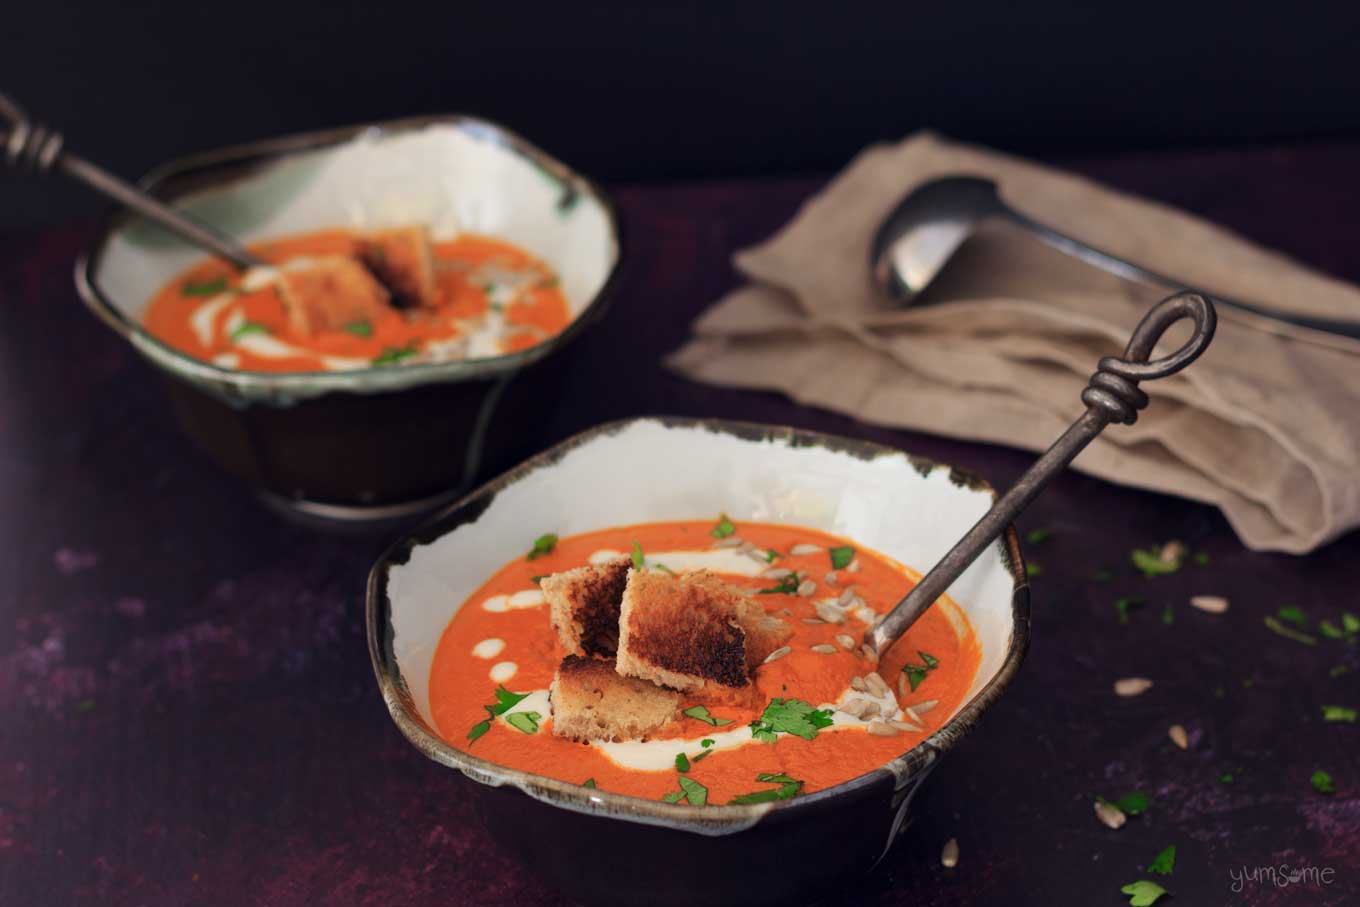 two bowls of Creamy vegan tomato bisque | yumsome.com